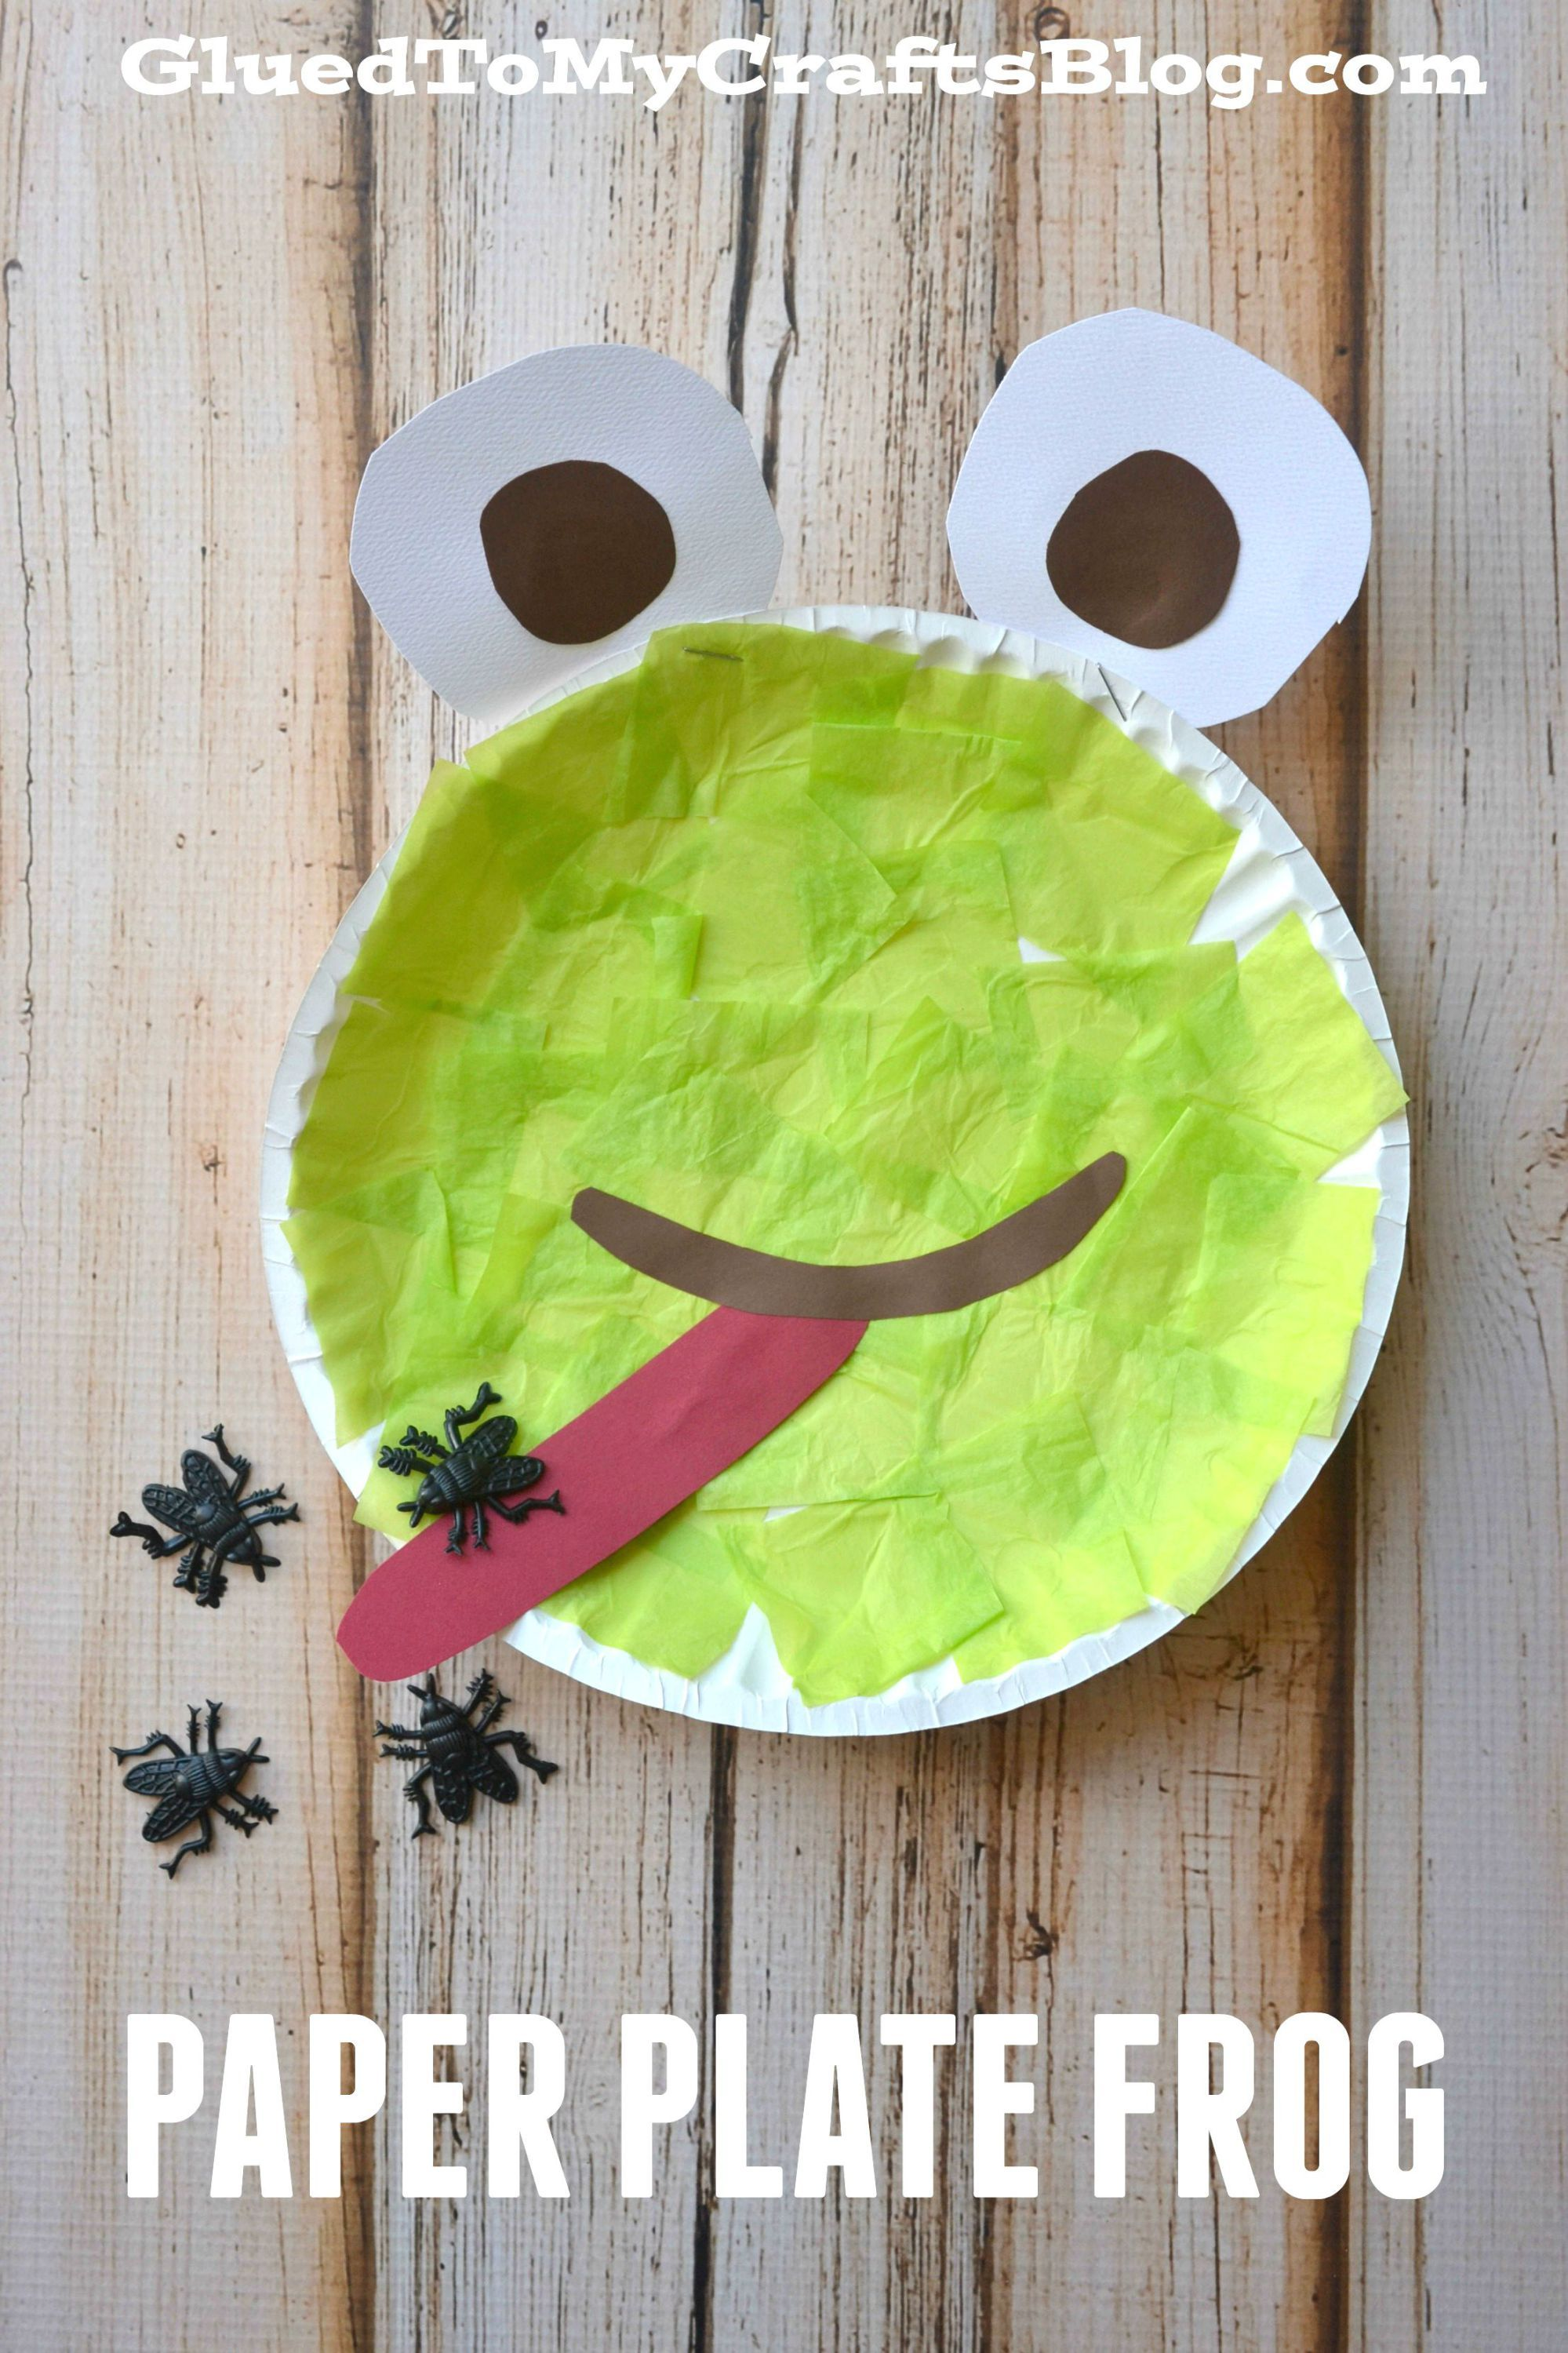 Paper Plate Frog - Kid Craft & Paper Plate Frog - Kid Craft | Frogs Crafts and Paper plate crafts